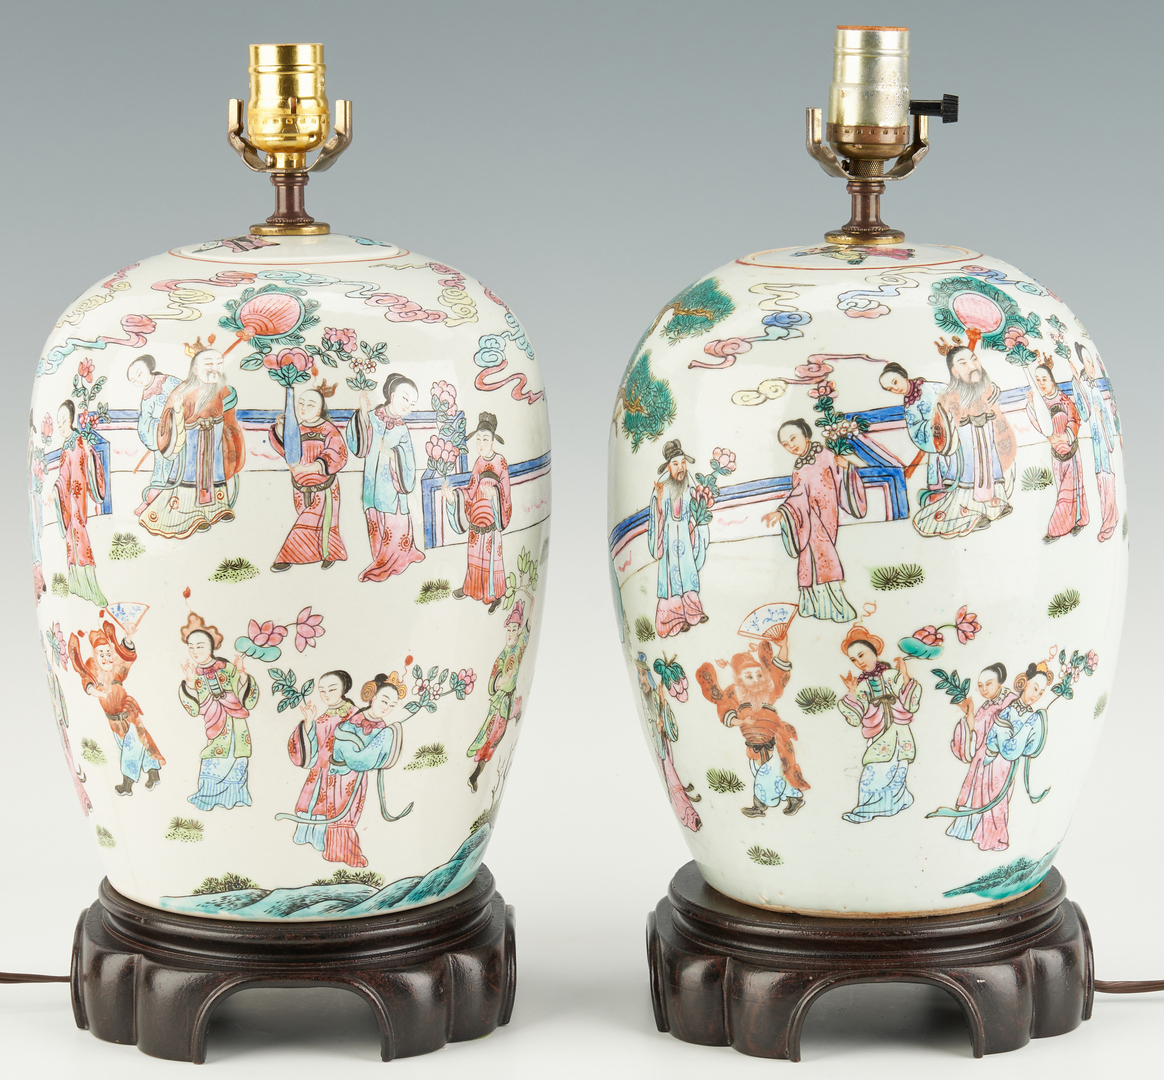 Lot 1095: Pair of Chinese Porcelain Lamps